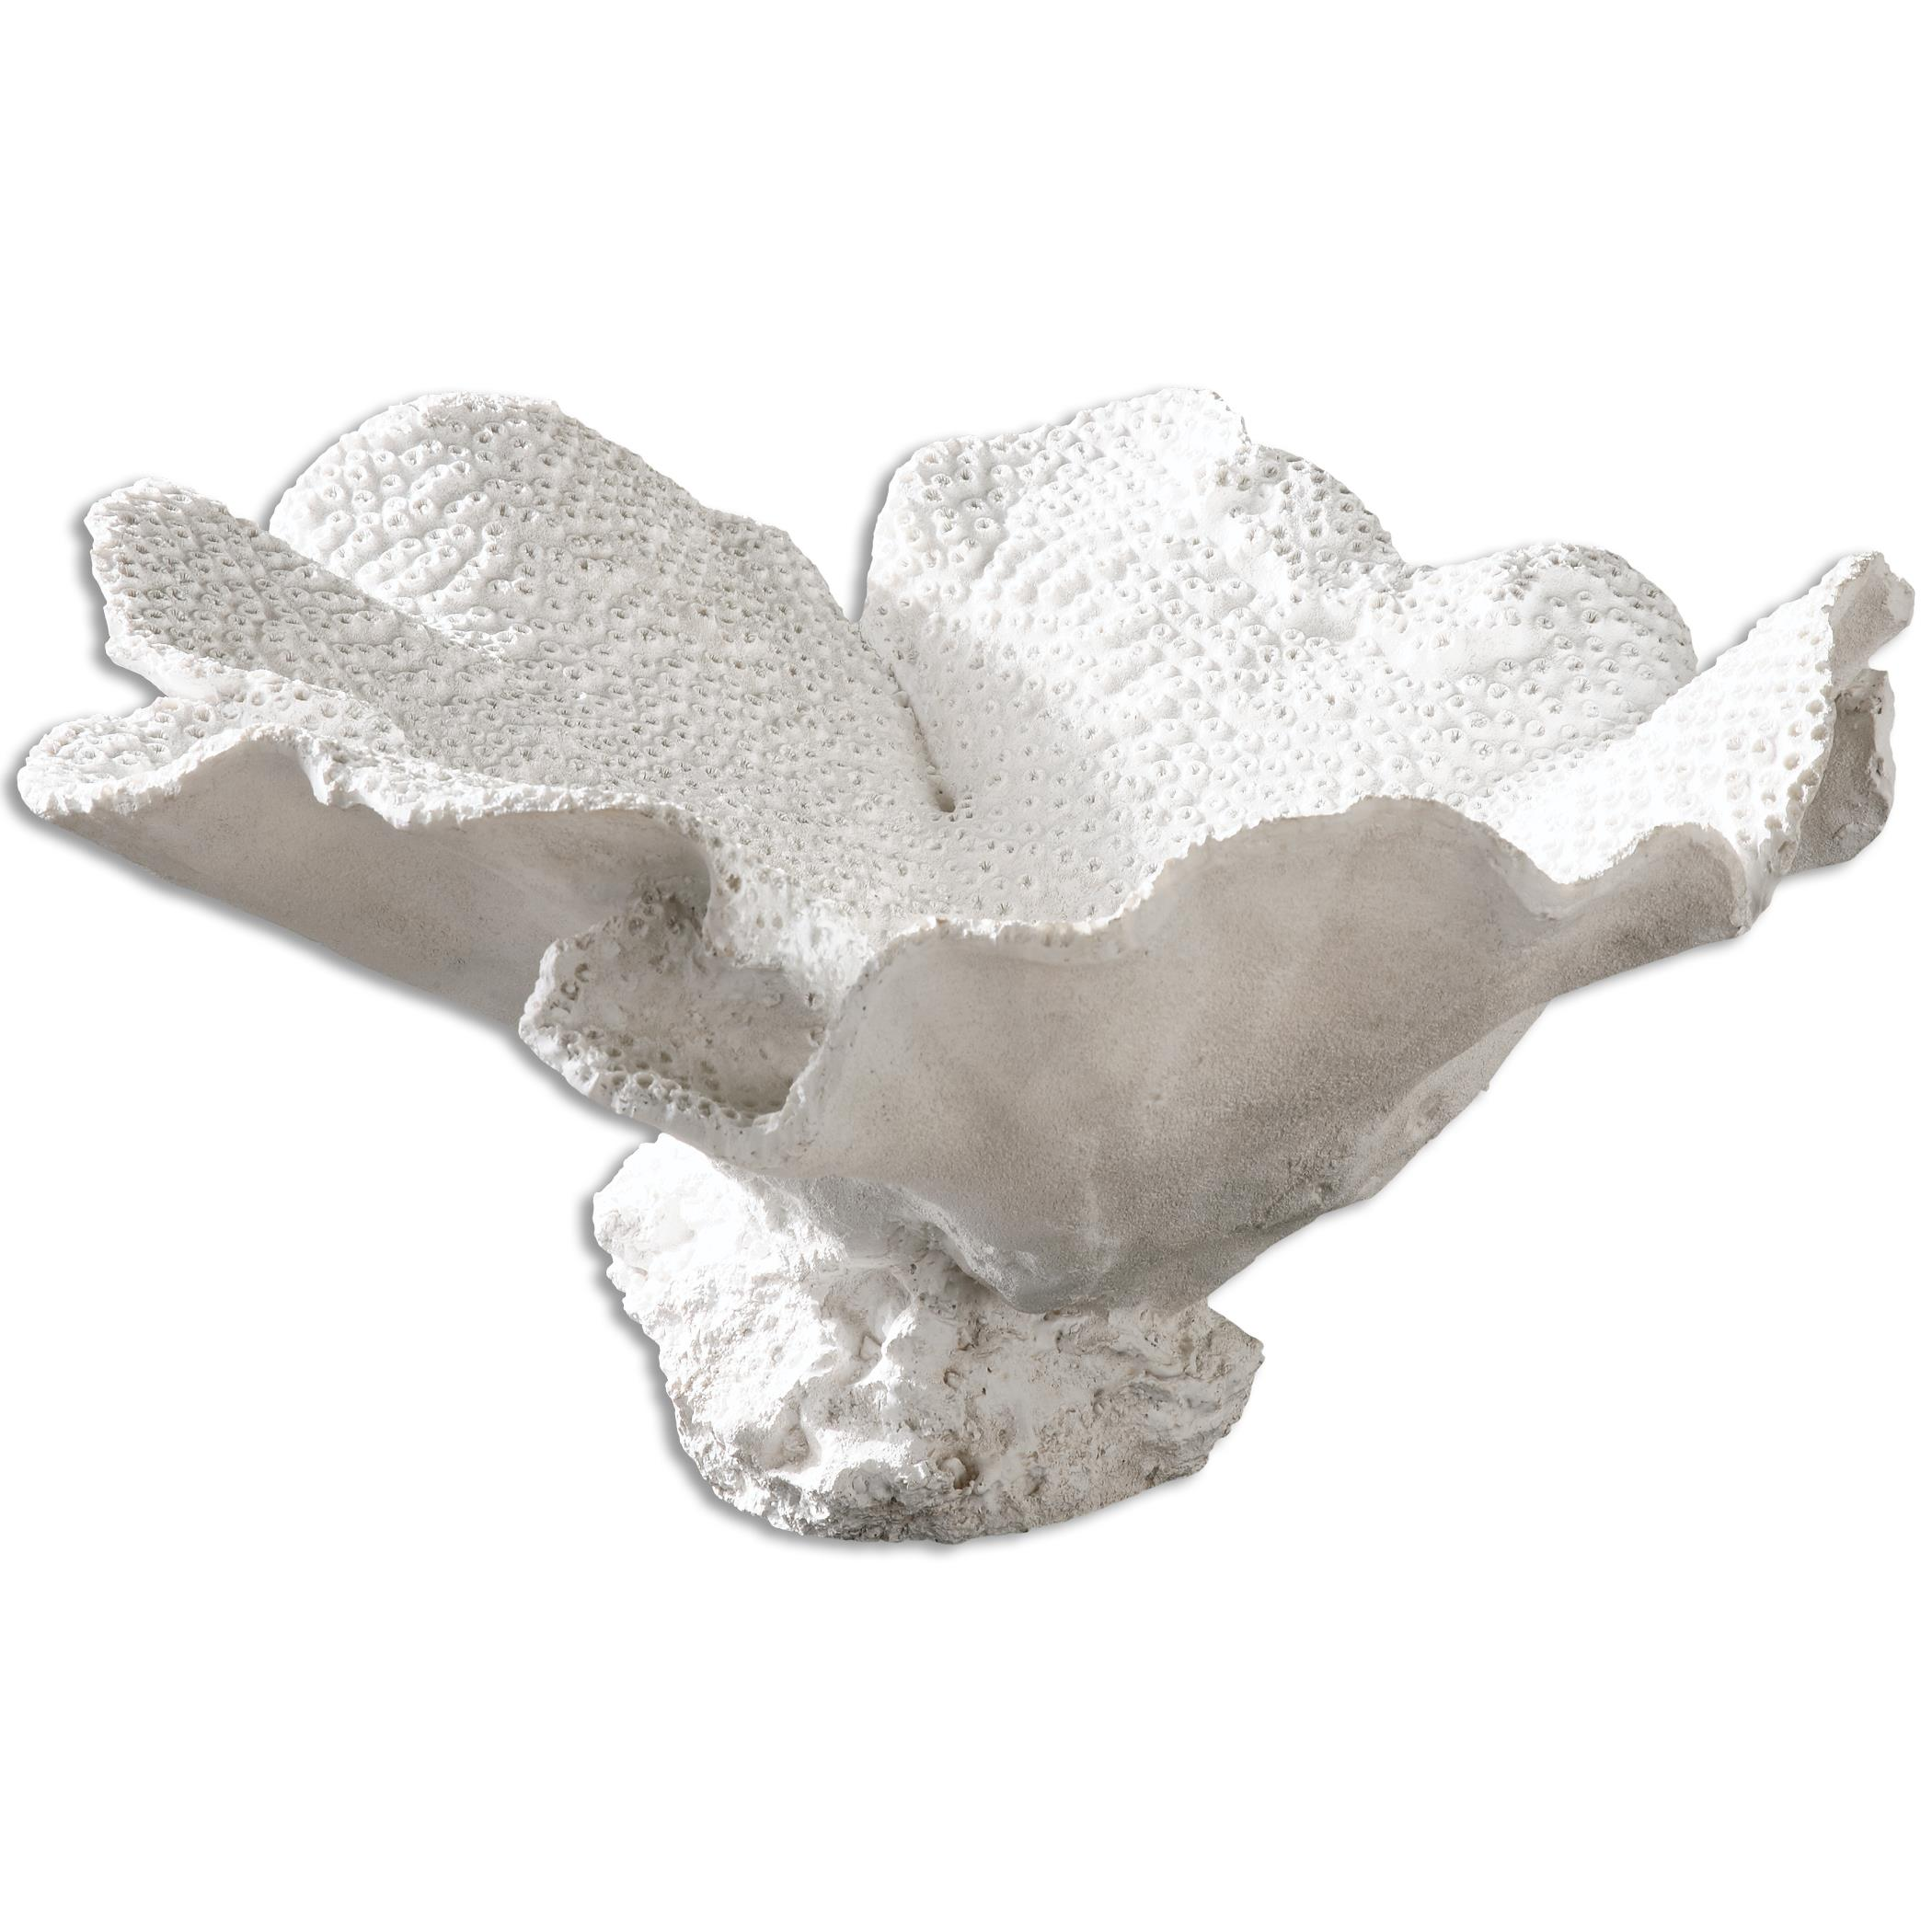 Uttermost Accessories Ali Textured White Bowl - Item Number: 19923